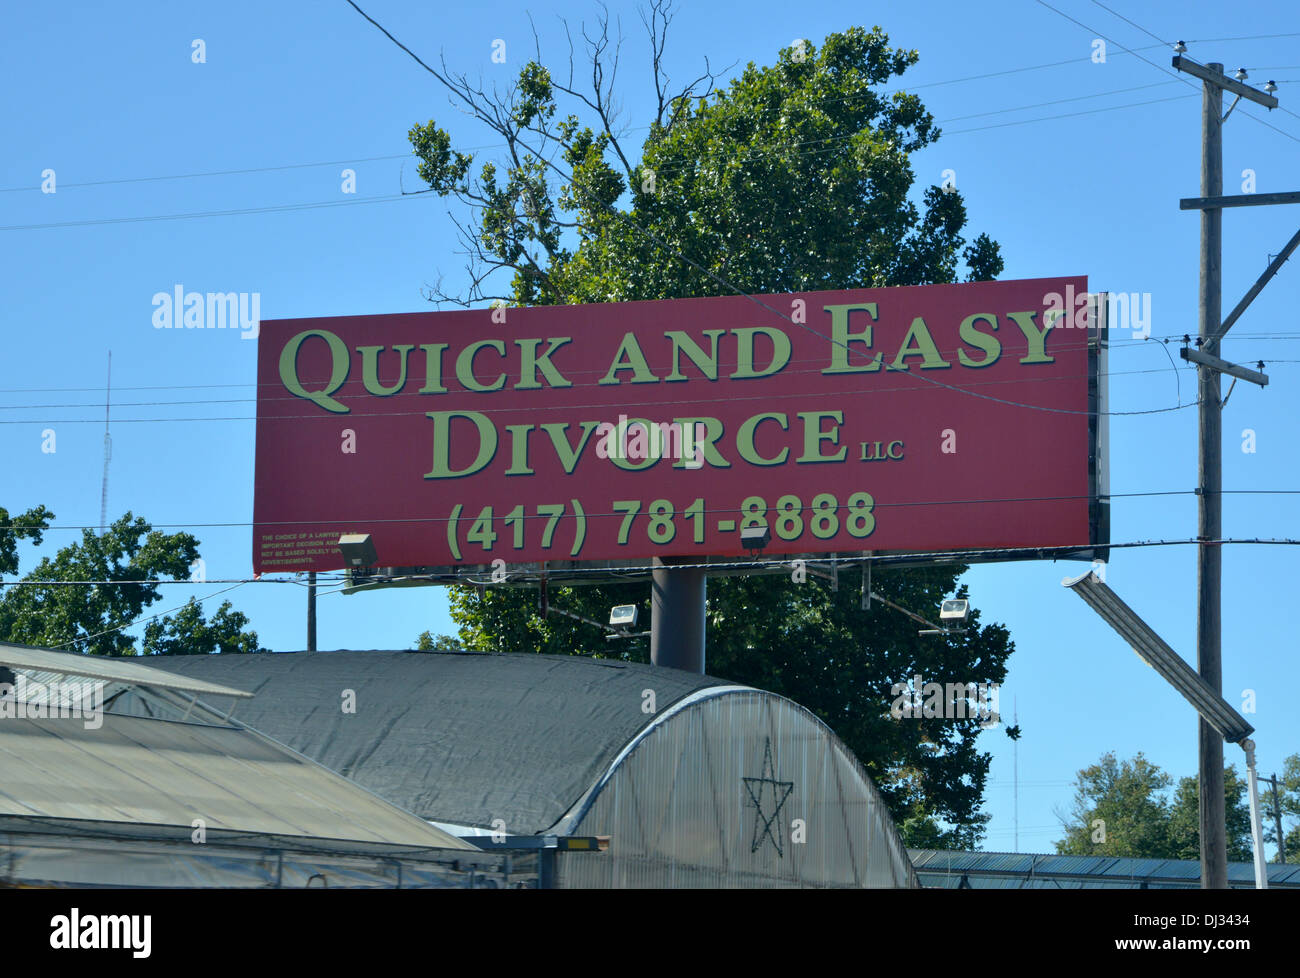 Quick and Easy Divorce advert sign on a building in America - Stock Image